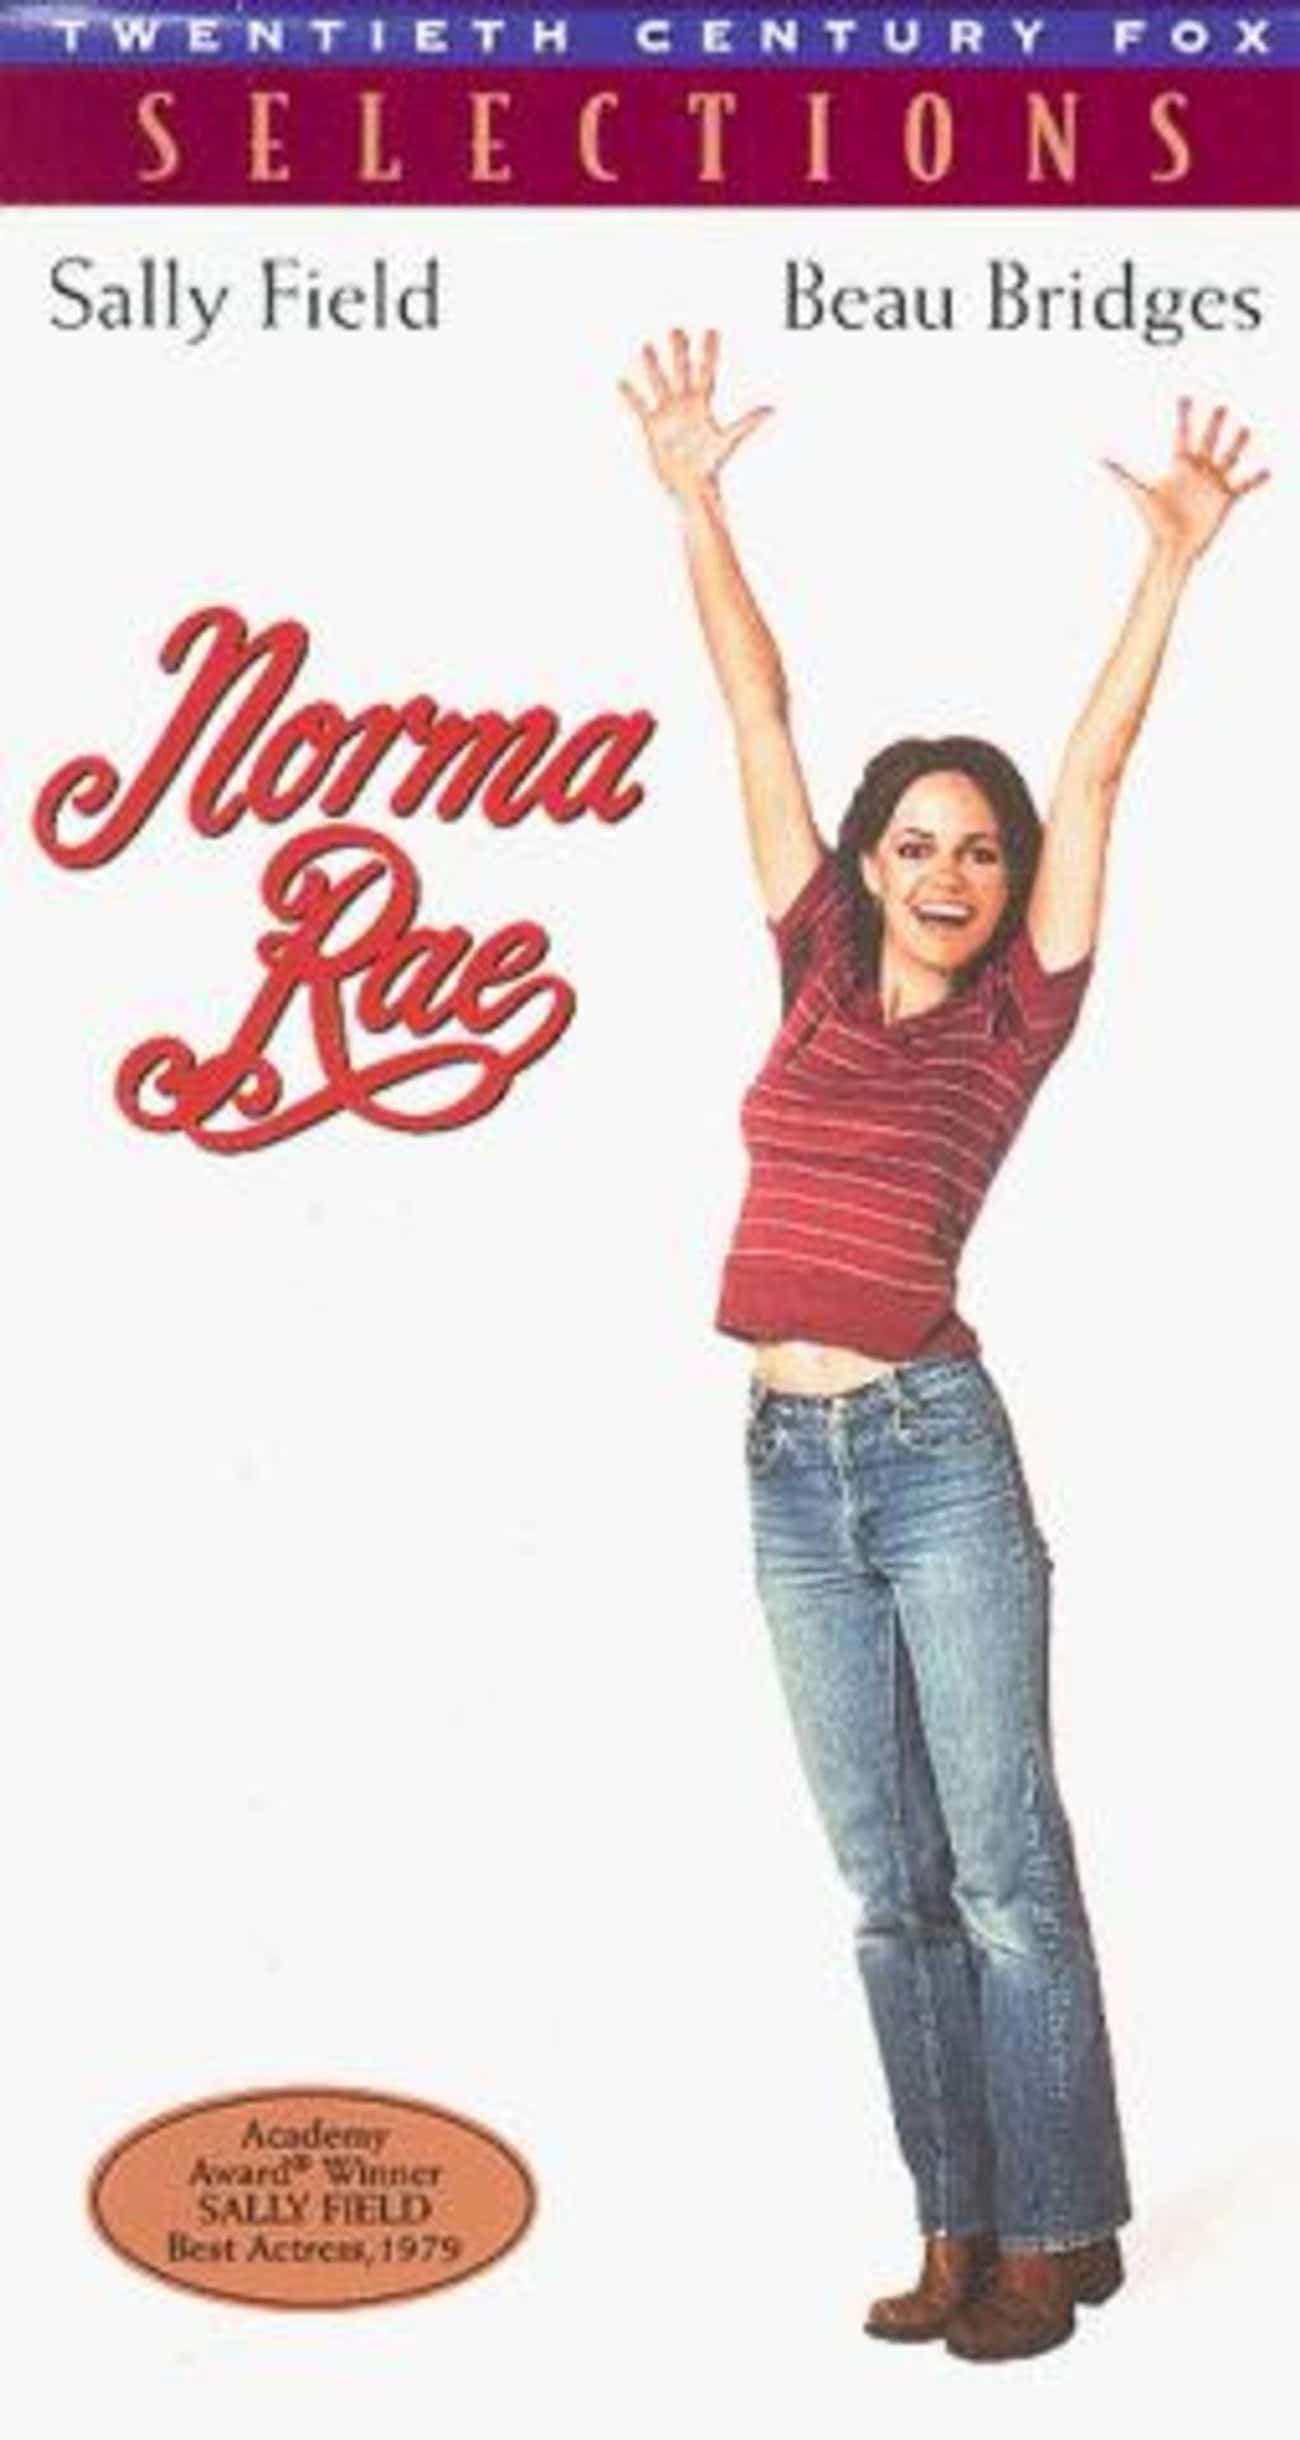 'Norma Rae' Looks Like A Cheerful, Quirky Comedy